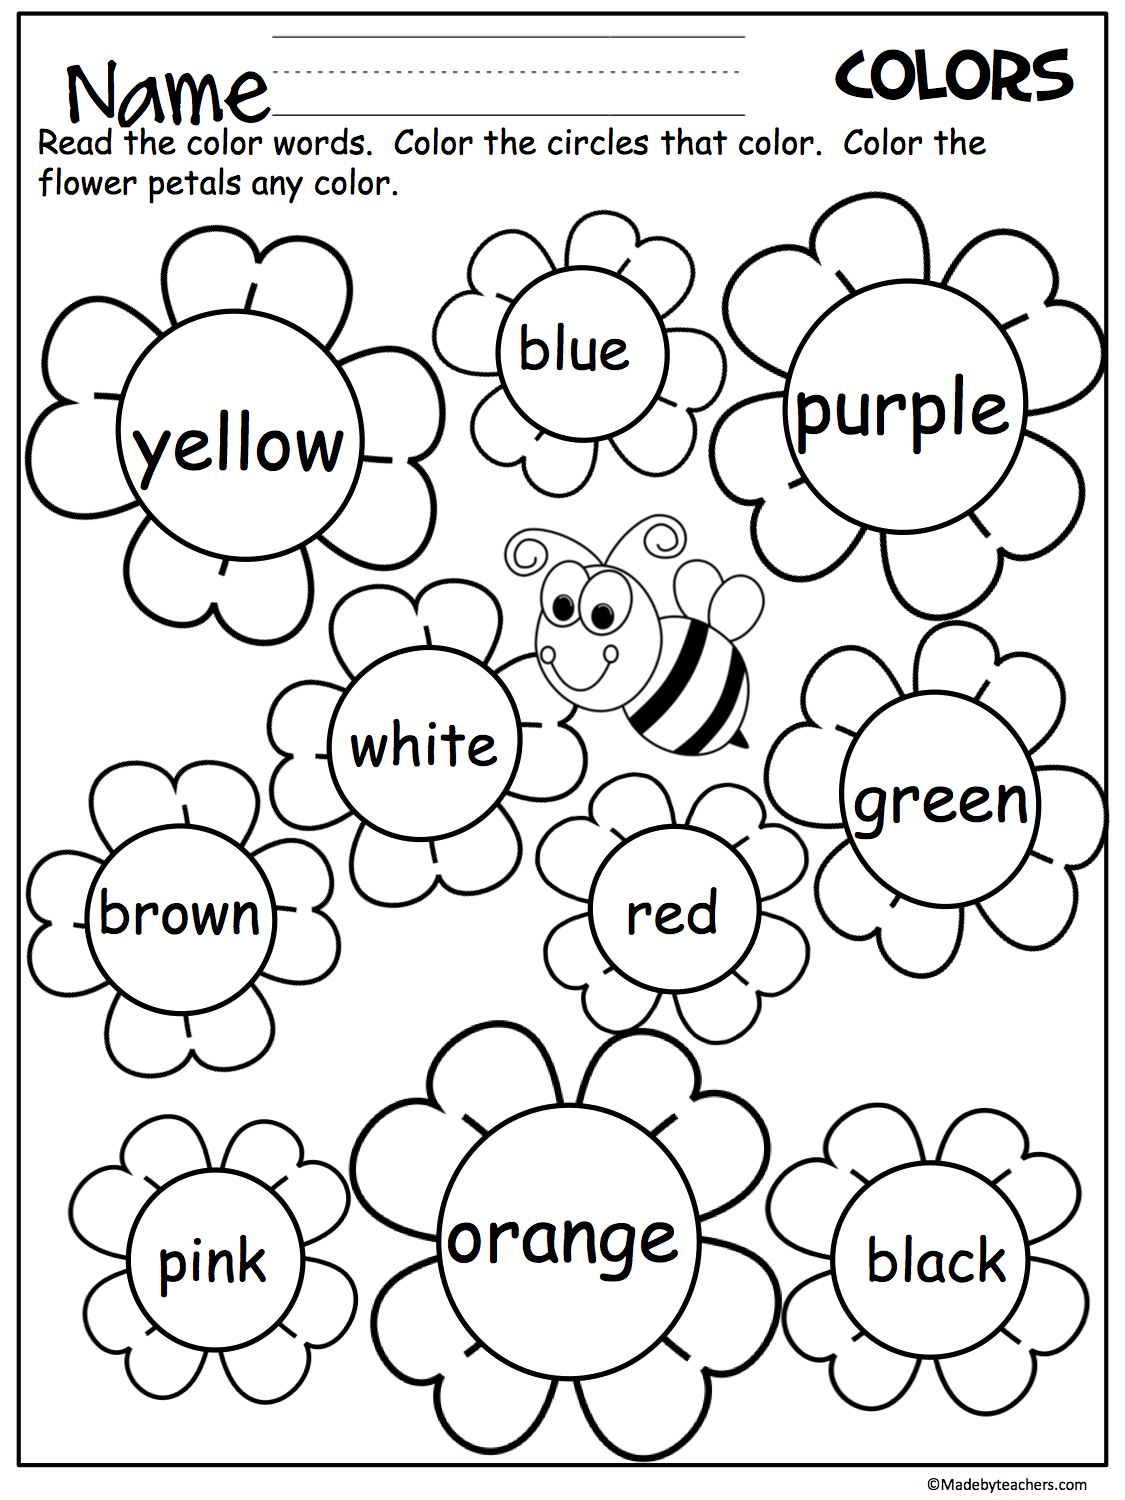 flower color words worksheet for kids kindergarten worksheets preschool worksheets. Black Bedroom Furniture Sets. Home Design Ideas